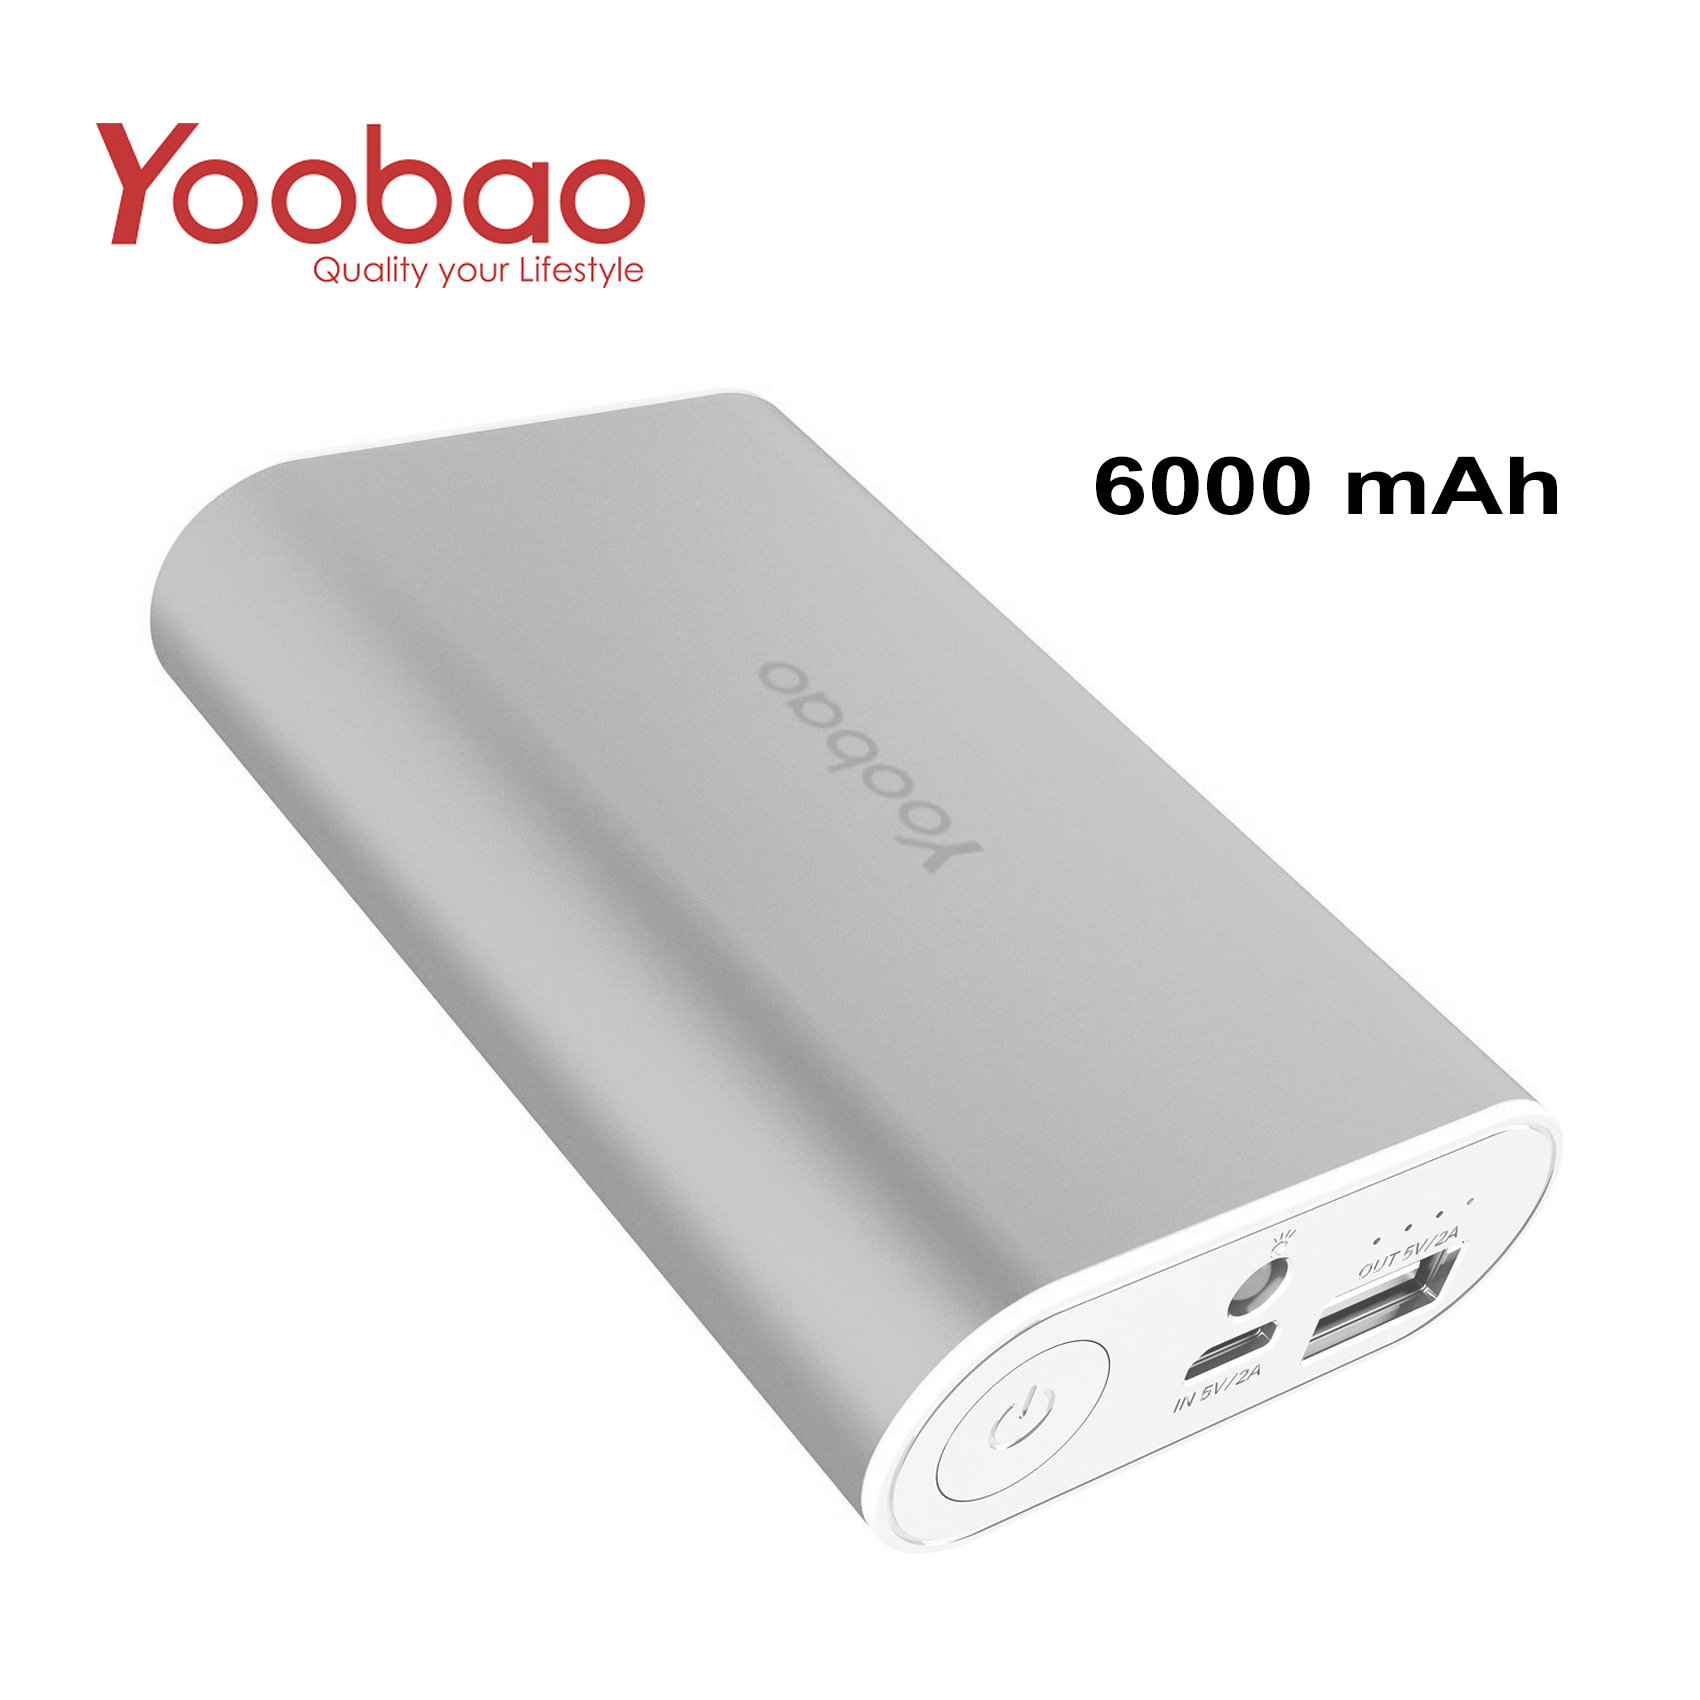 YOOBAO Intelligent Power Bank S3 6000mAh Portable Charger - Silver